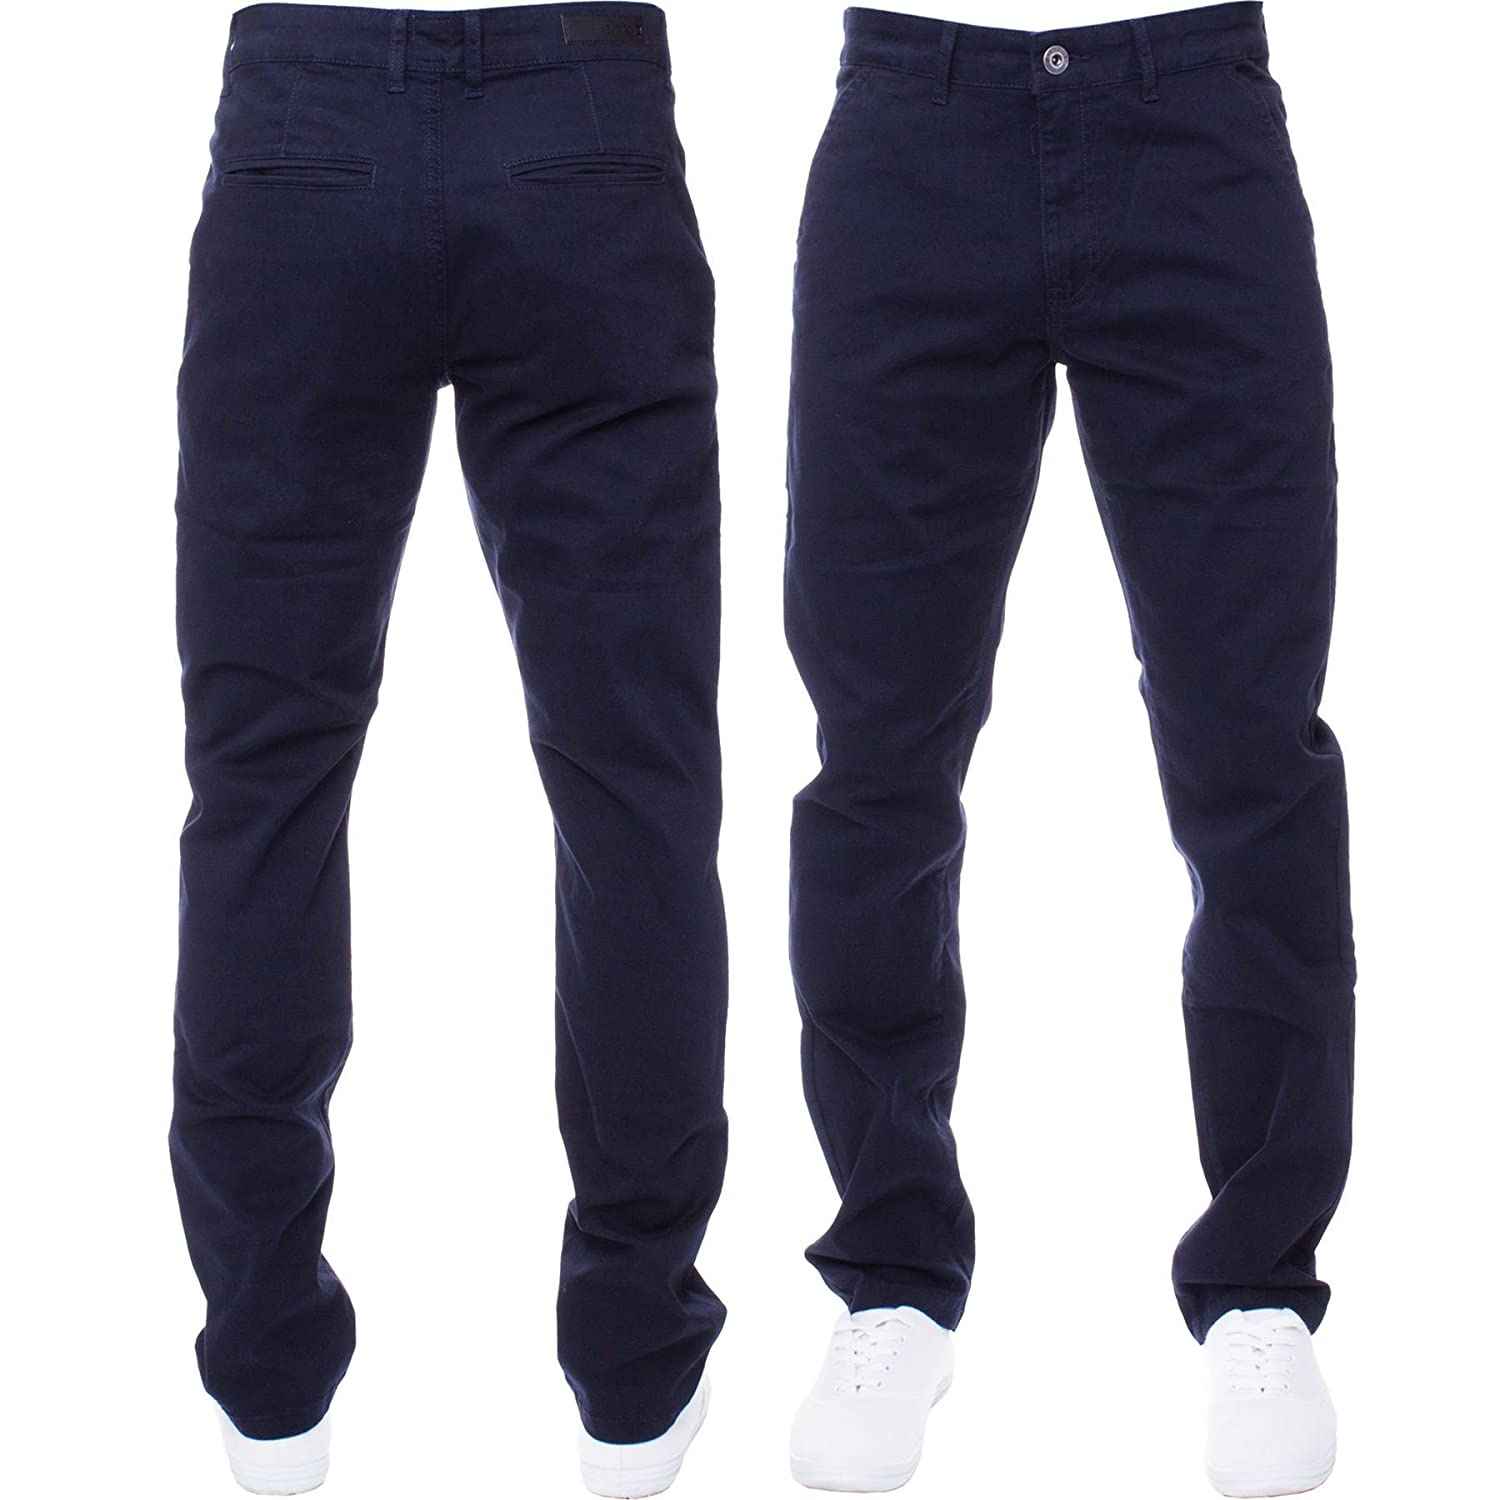 Enzo Mens Jeans Skinny Slim Fit Chinos Super Stretch Distressed Denim Trousers